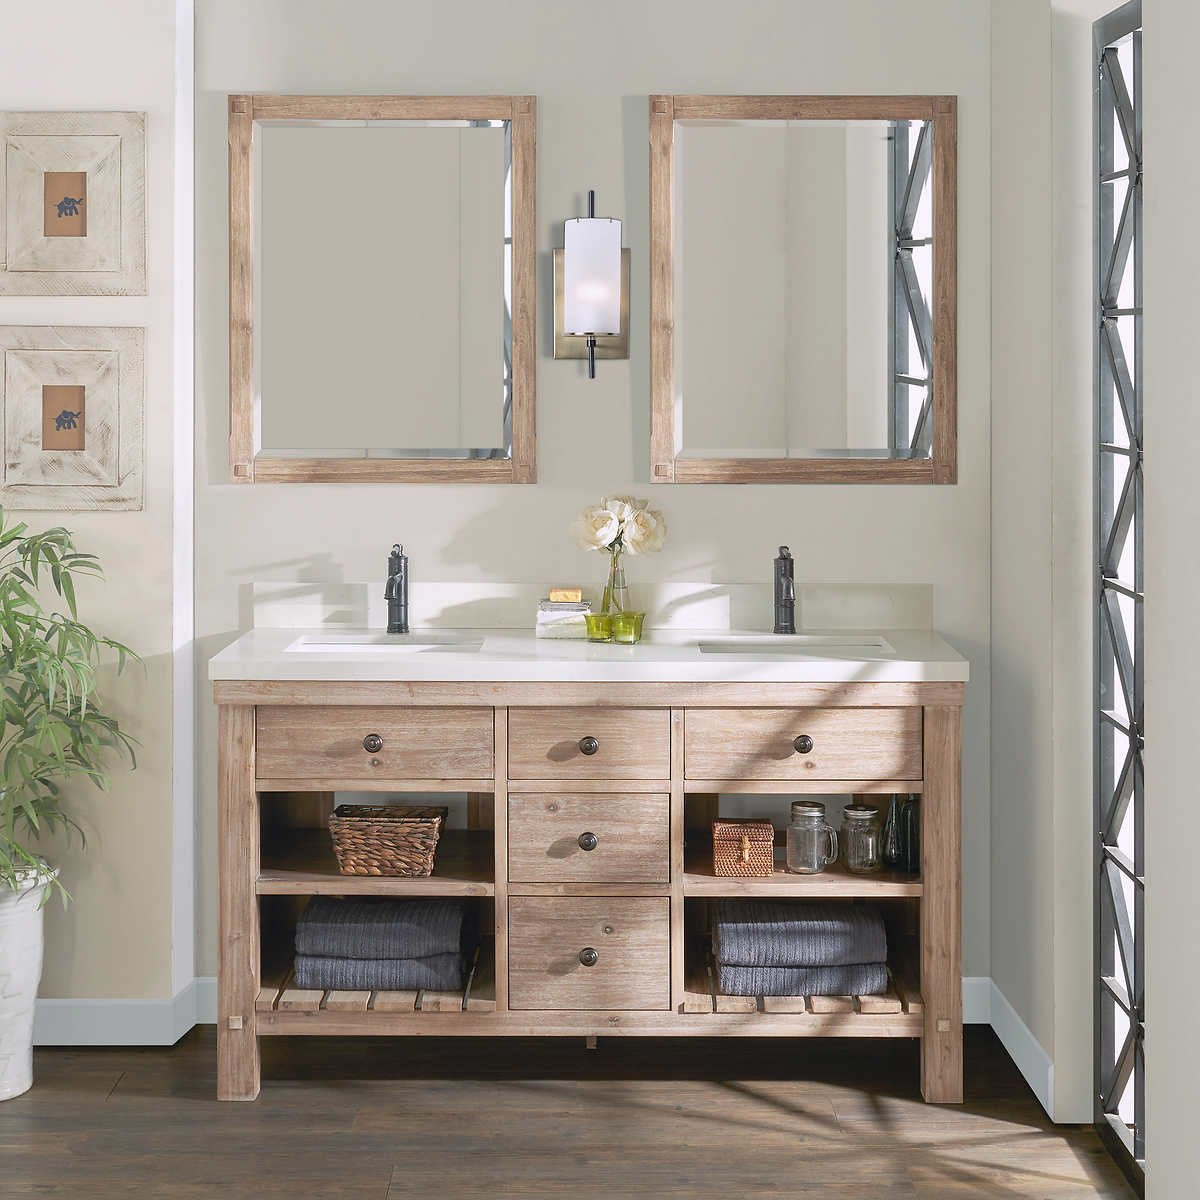 "Costco Bedroom Furniture Reviews Lovely Elbe Rustic 60"" Double Sink Vanity by northridge Home"